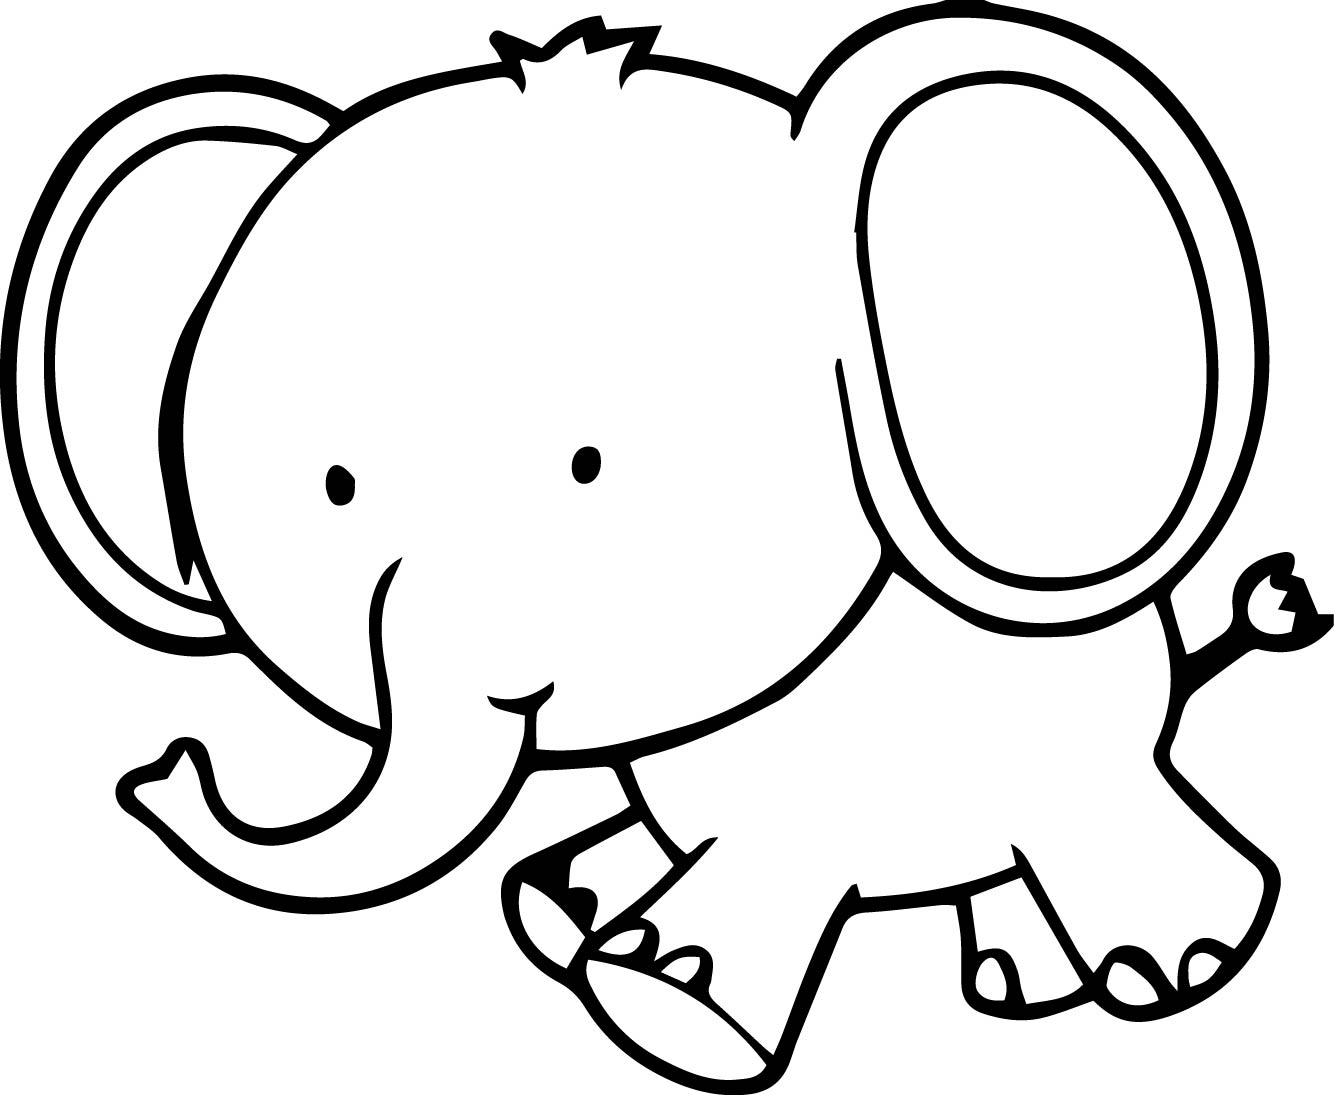 elephant coloring picture elephant coloring pages free download on clipartmag coloring elephant picture 1 1